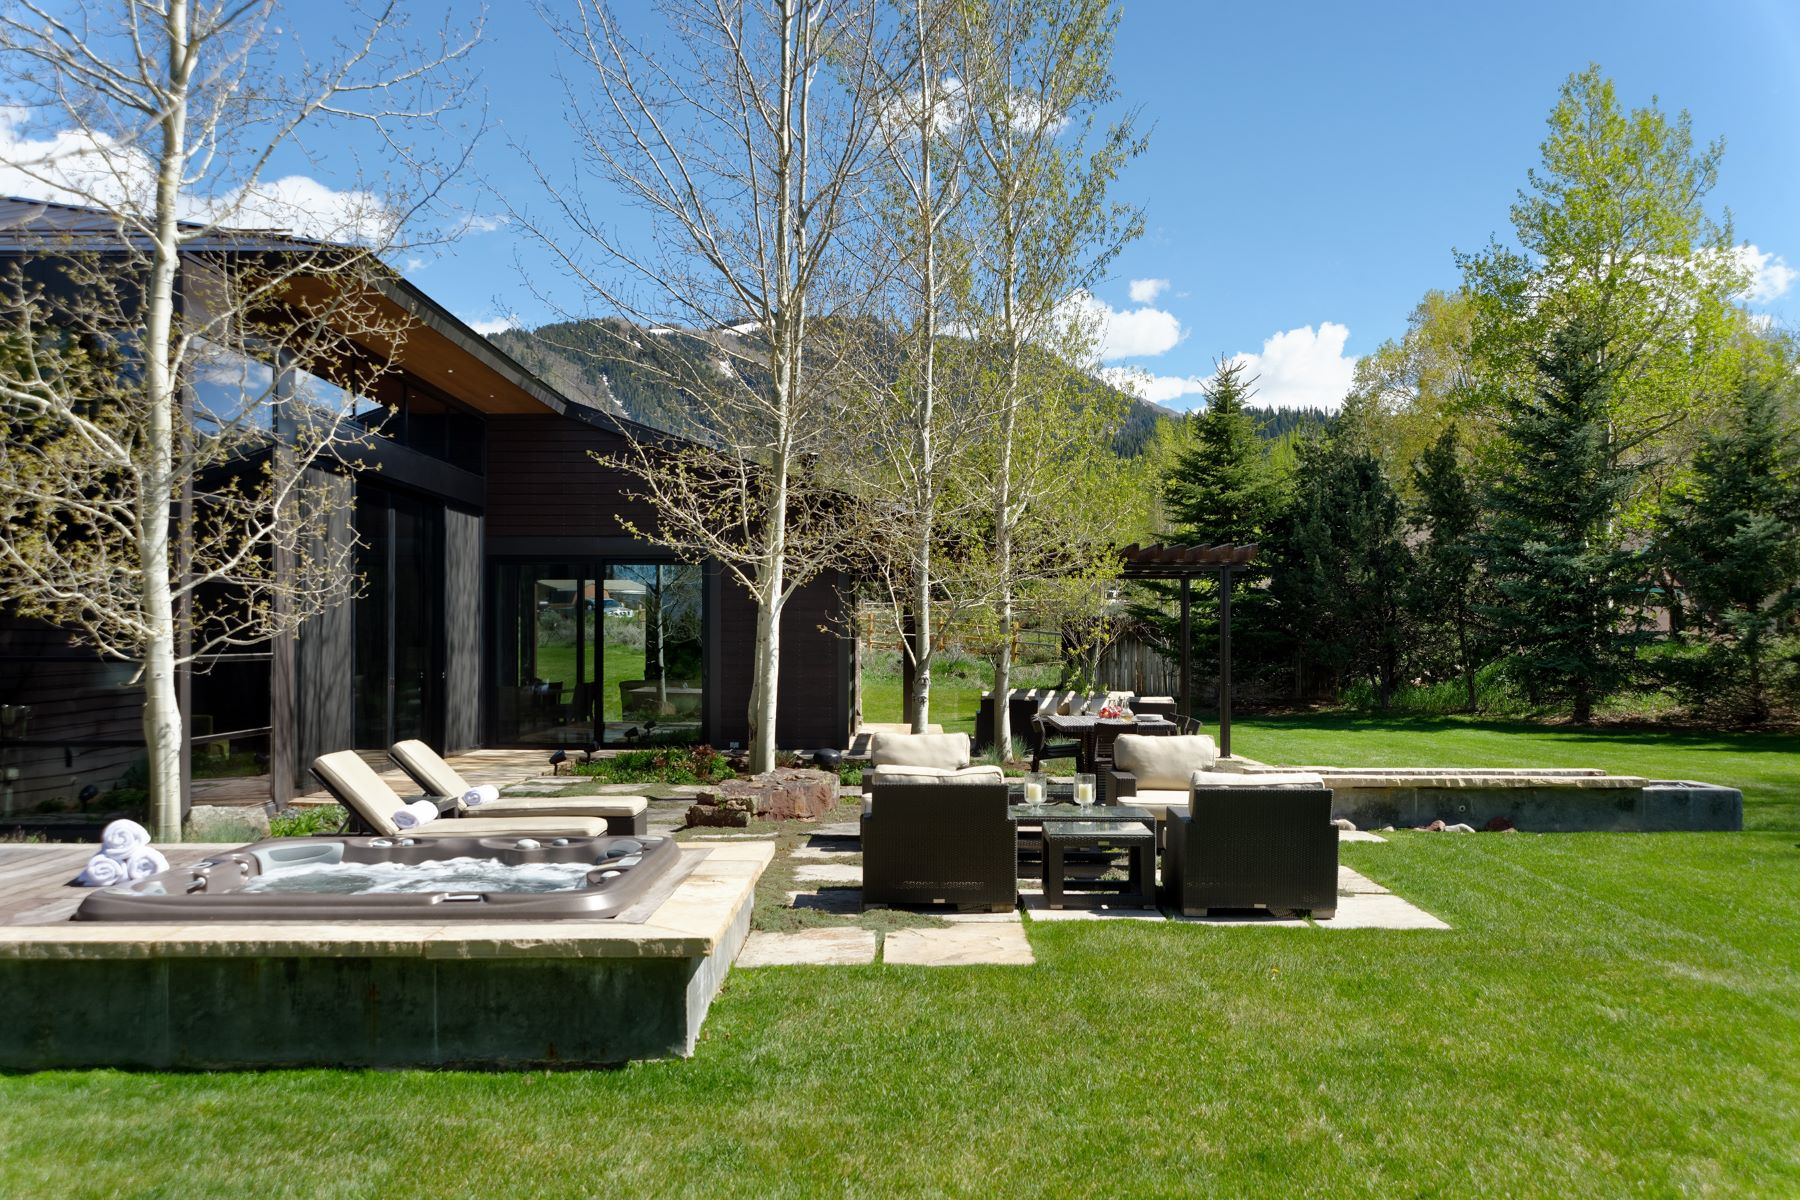 Single Family Home for Active at Impressive Mountain Contemporary in West Aspen 28 Maroon Drive Aspen, Colorado 81611 United States